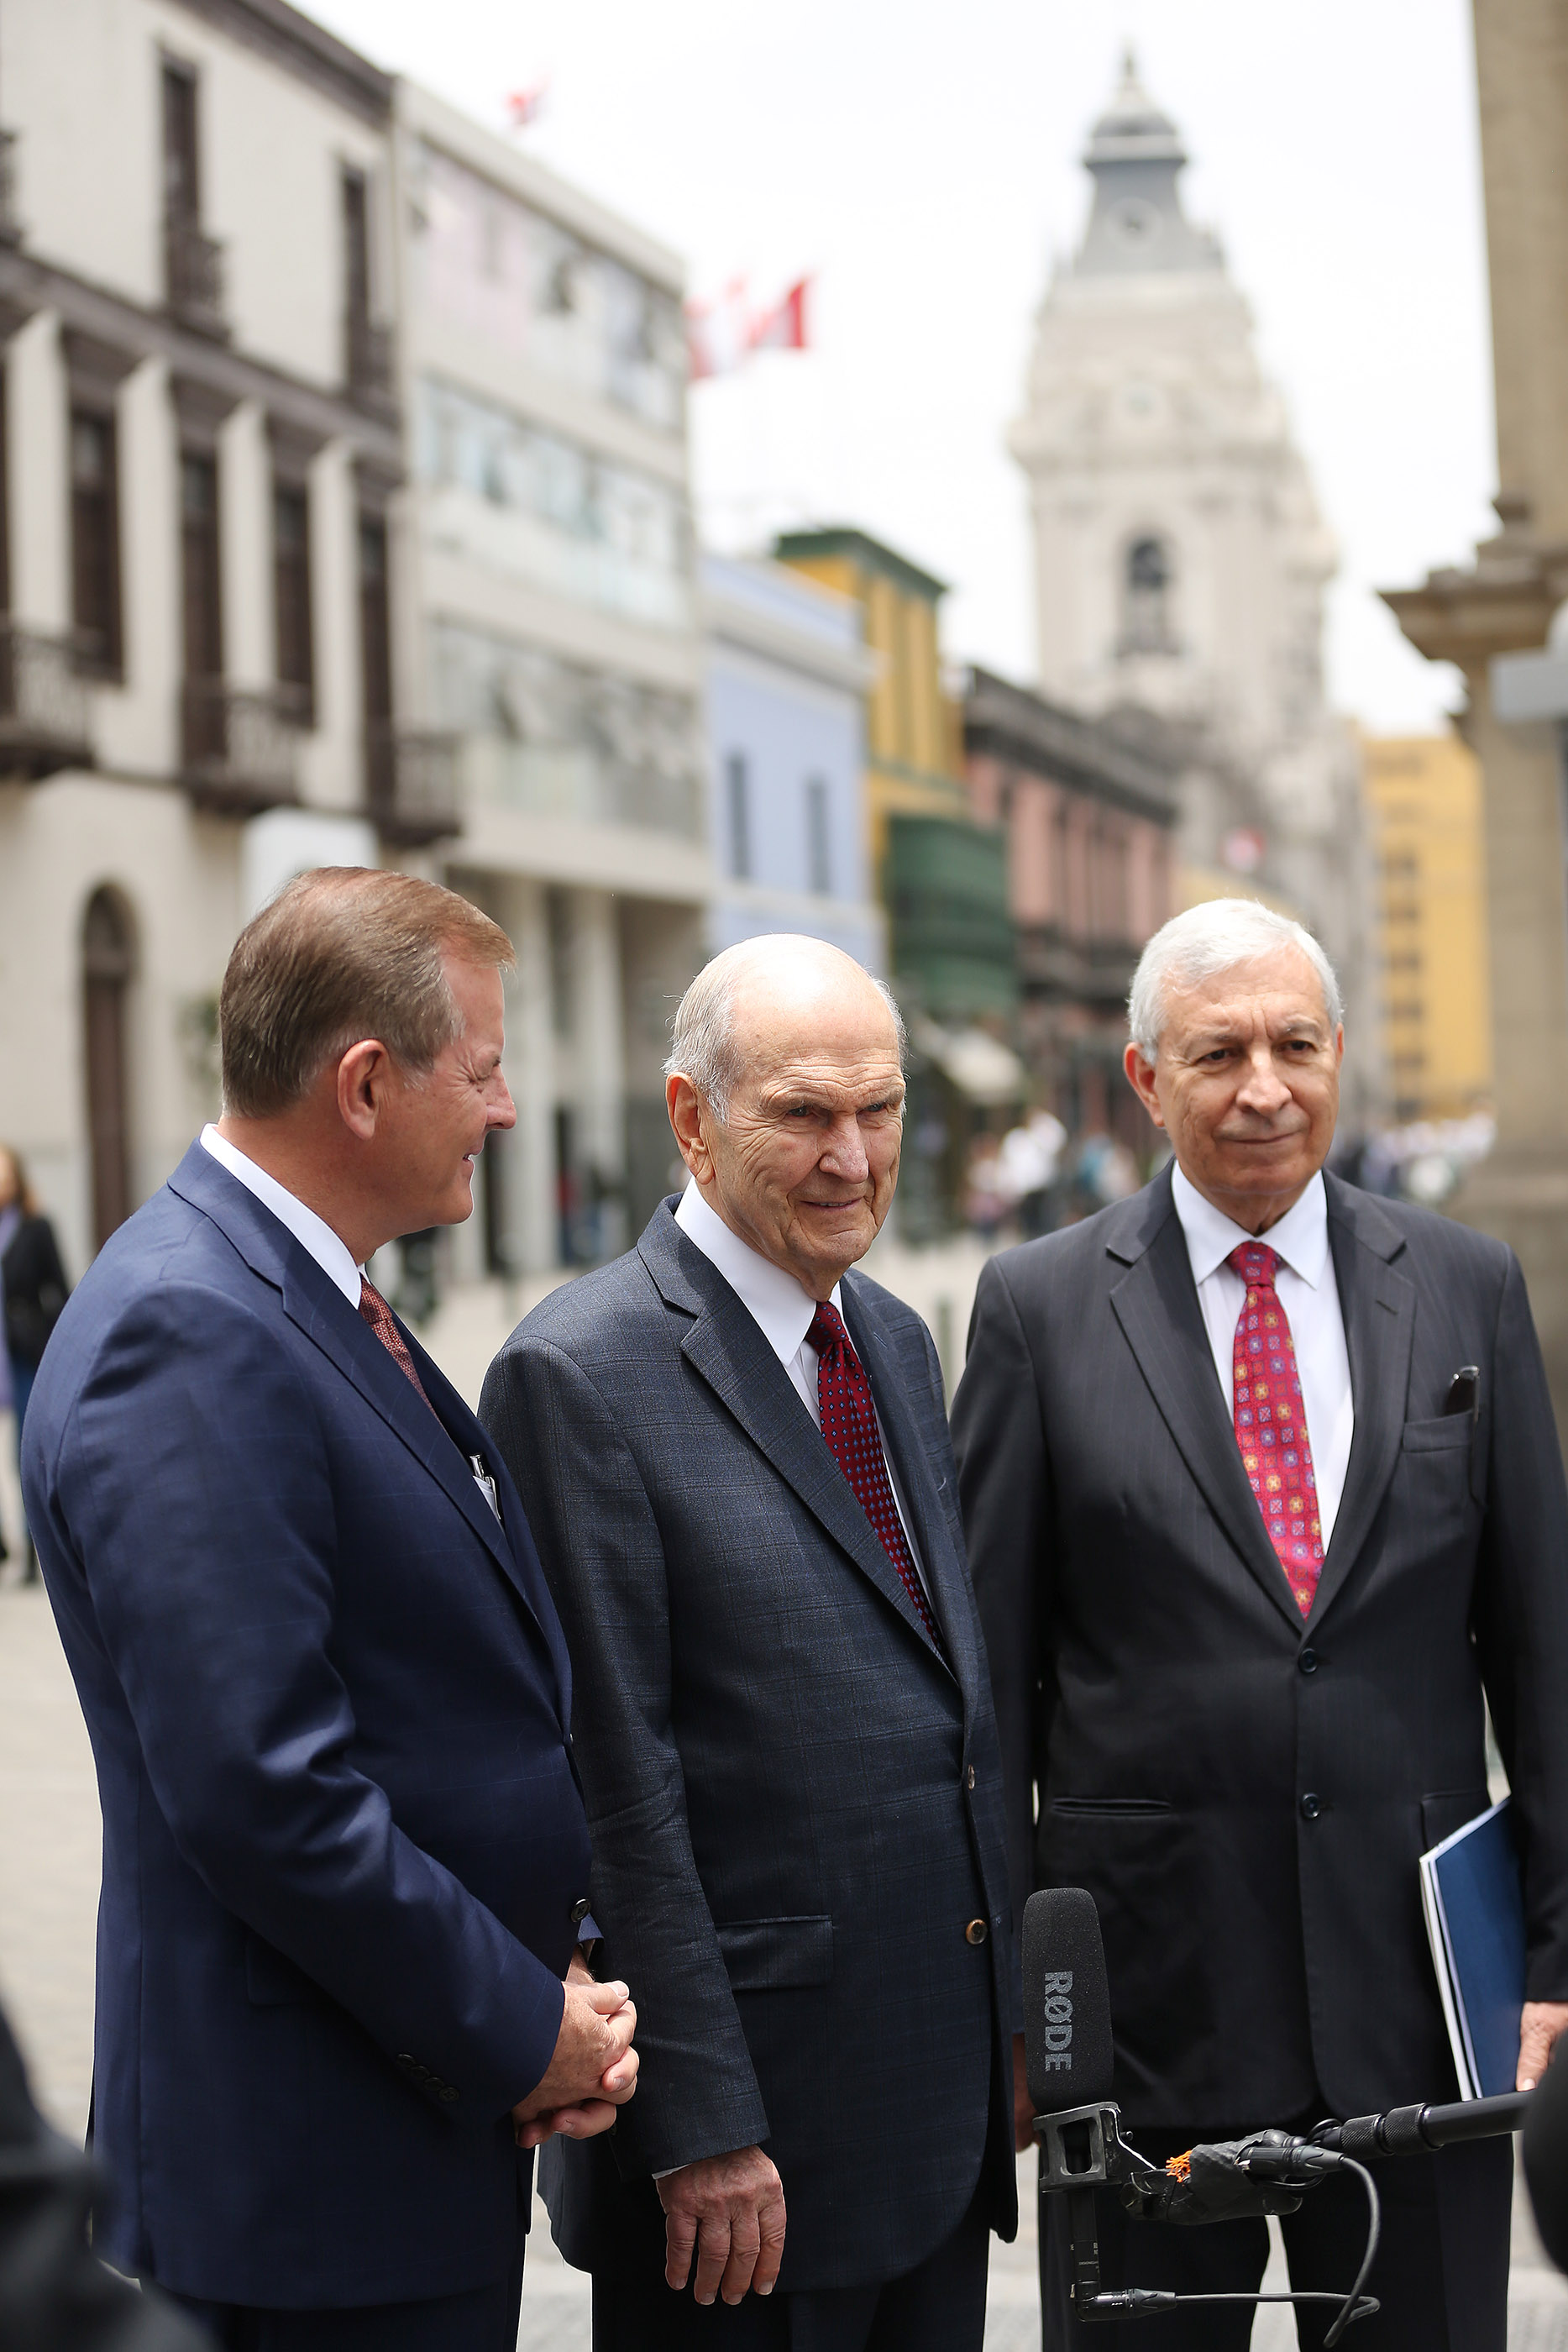 President Russell M. Nelson of The Church of Jesus Christ of Latter-day Saints, center, Elder Gary E. Stevenson, of the Quorum of the Twelve Apostles, and Elder Enrique Falabella, General Authority Seventy speak with media after leaving the Government Palace after speaking with the president of Peru in Lima, Peru, on Oct. 20, 2018.